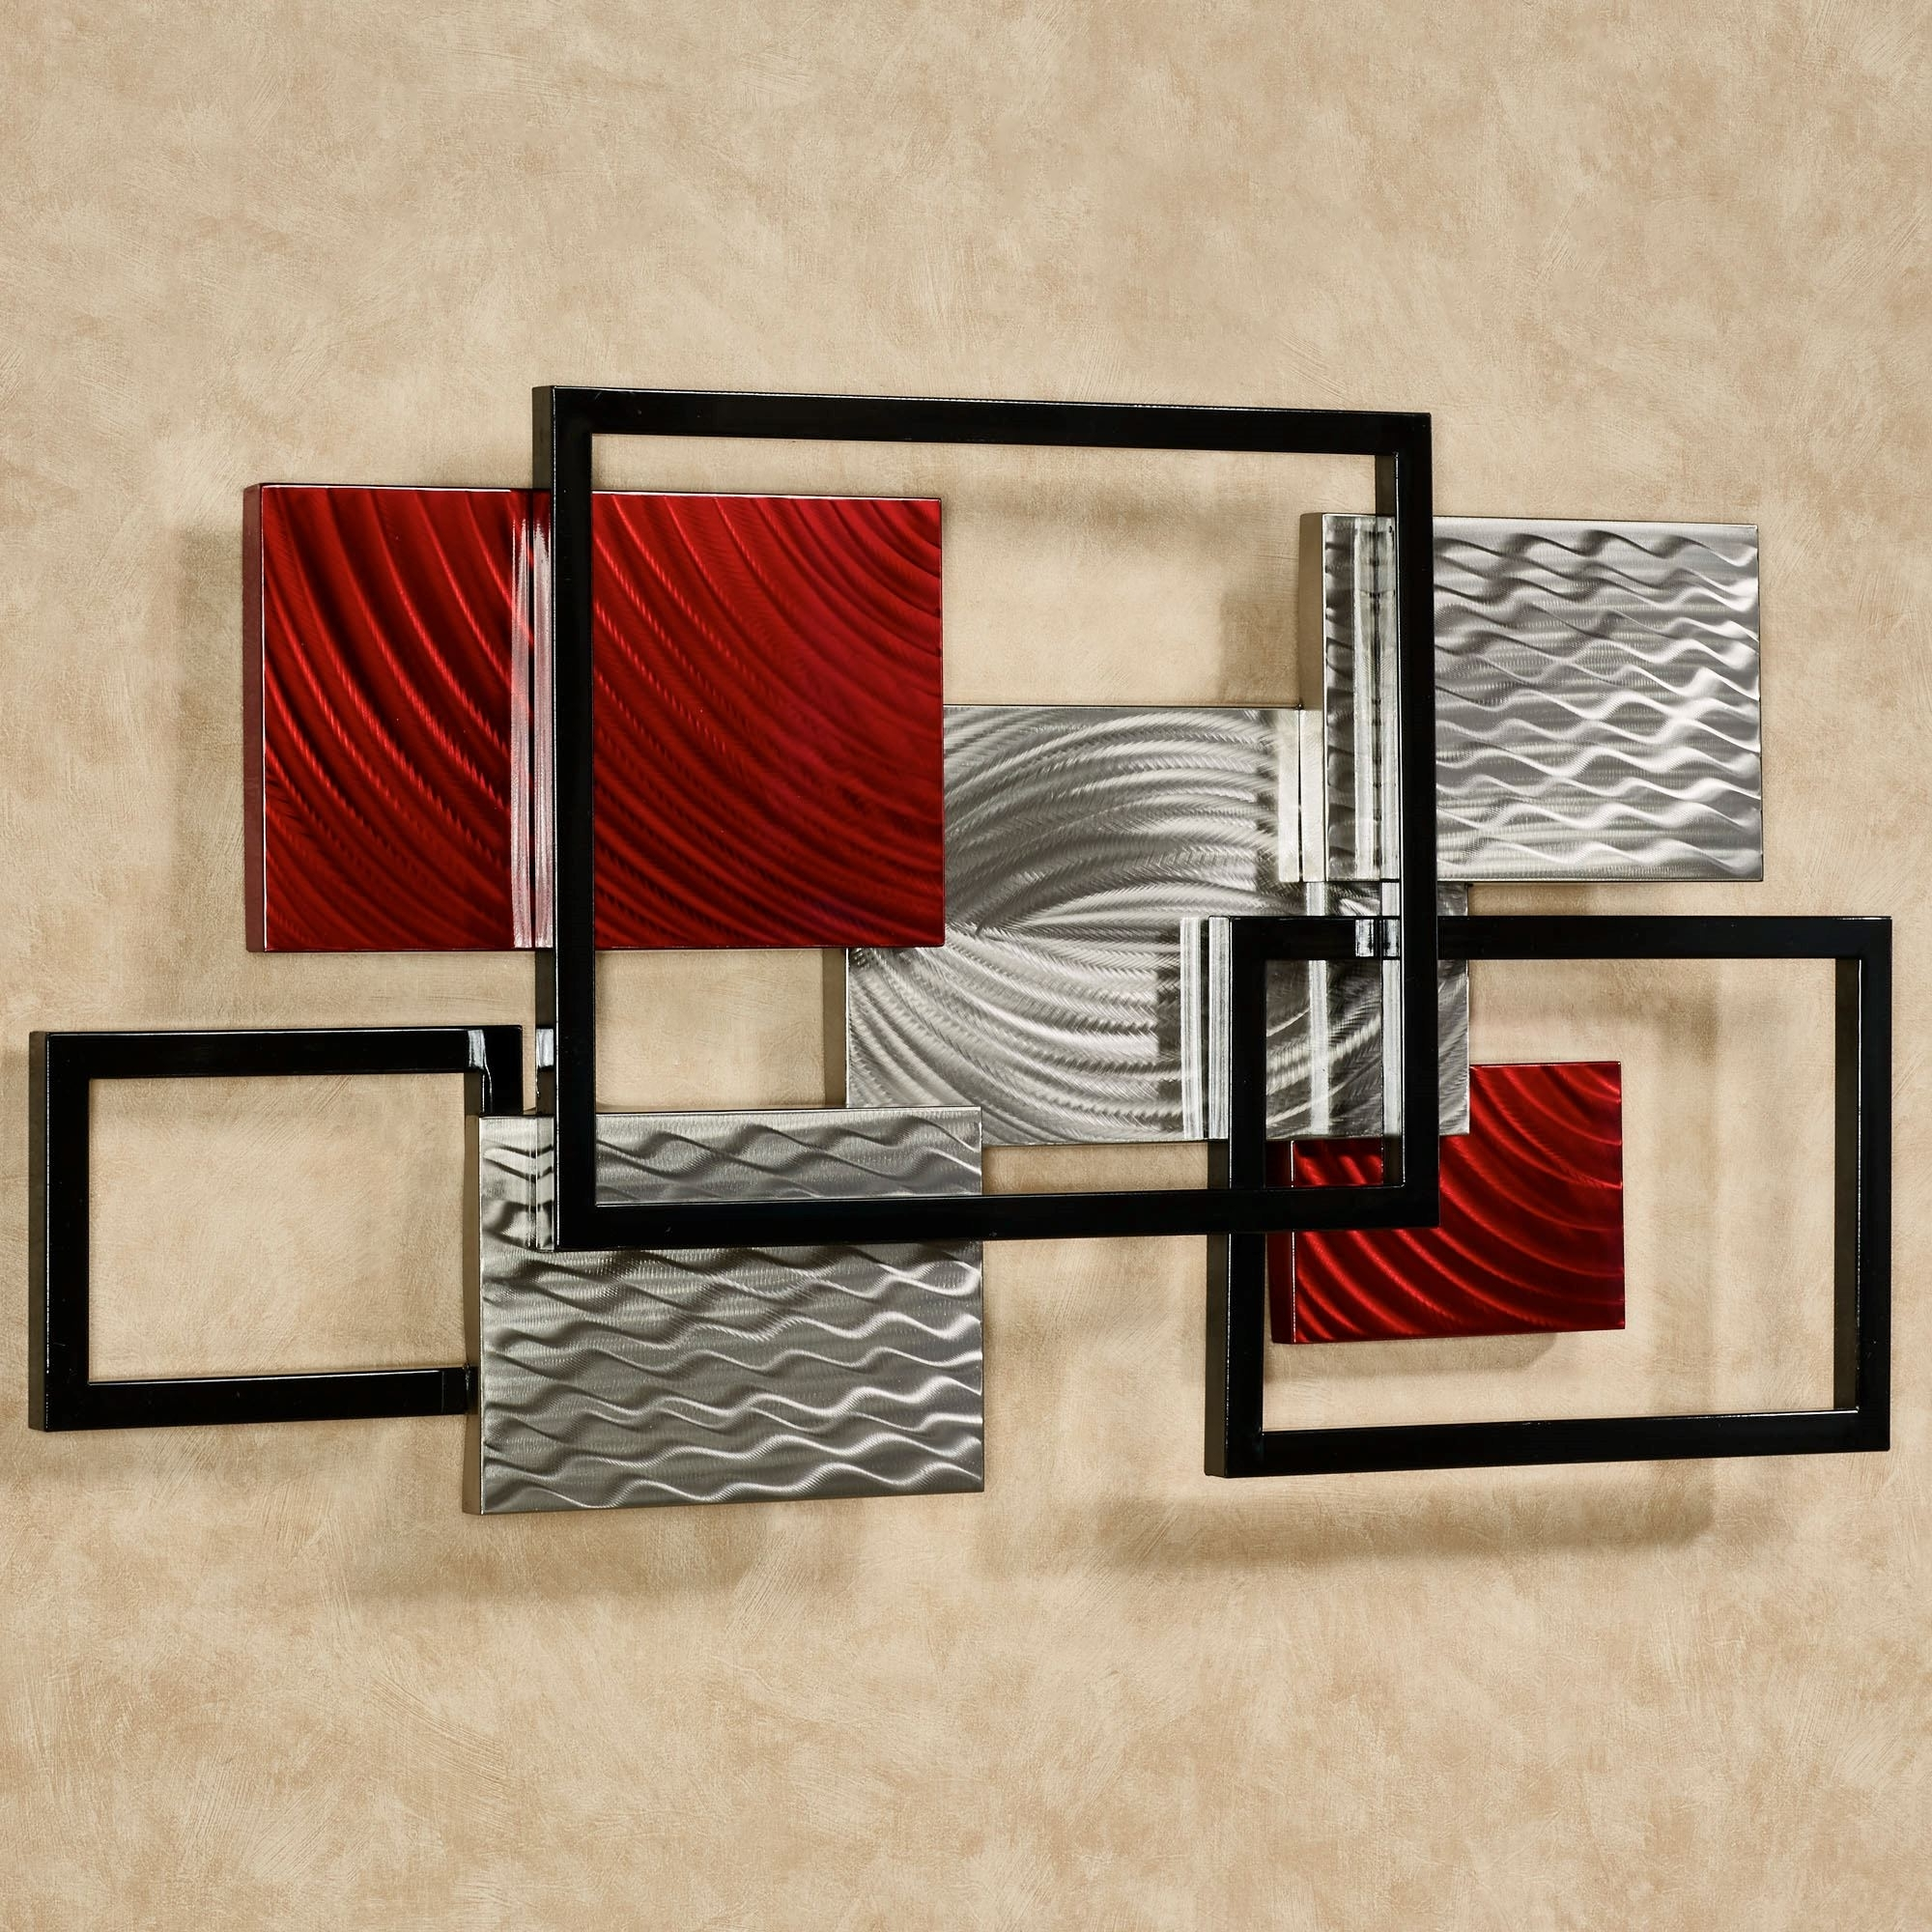 Preferred Framed Array Indoor Outdoor Abstract Metal Wall Sculpture With Contemporary Abstract Wall Art (View 11 of 15)